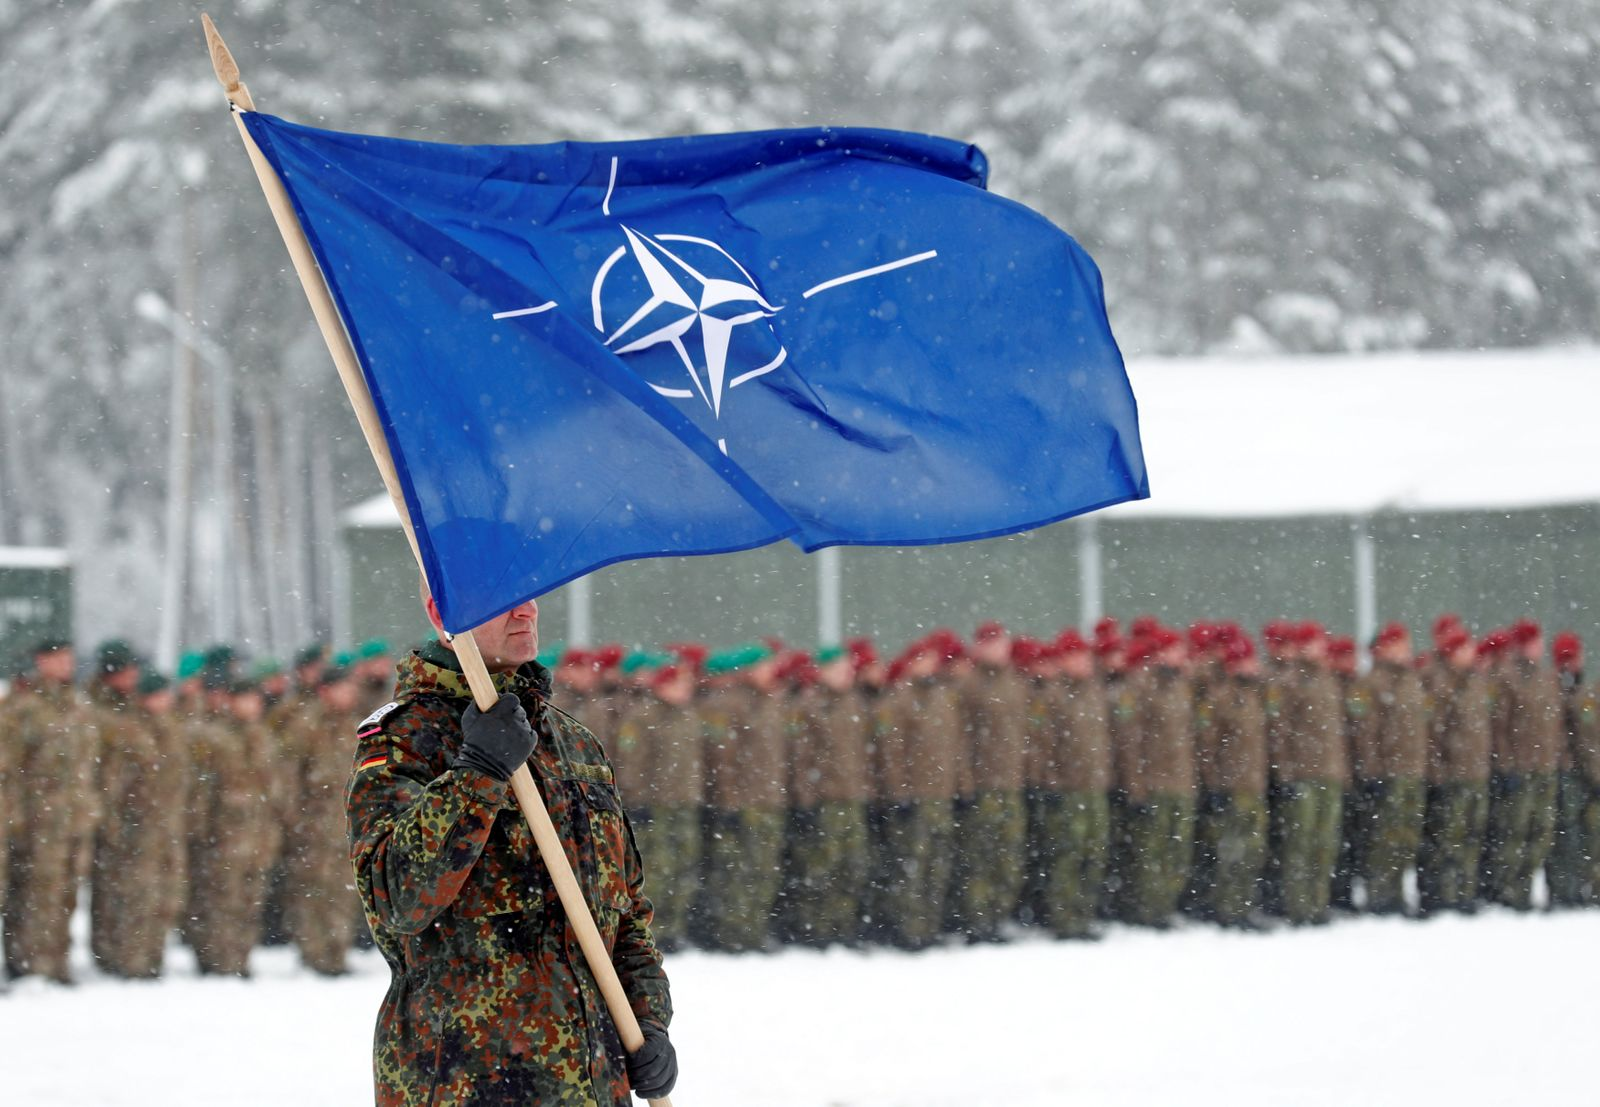 Relations between NATO and Russia are at their lowest with a growing risk of military conflict, a European think tank warns